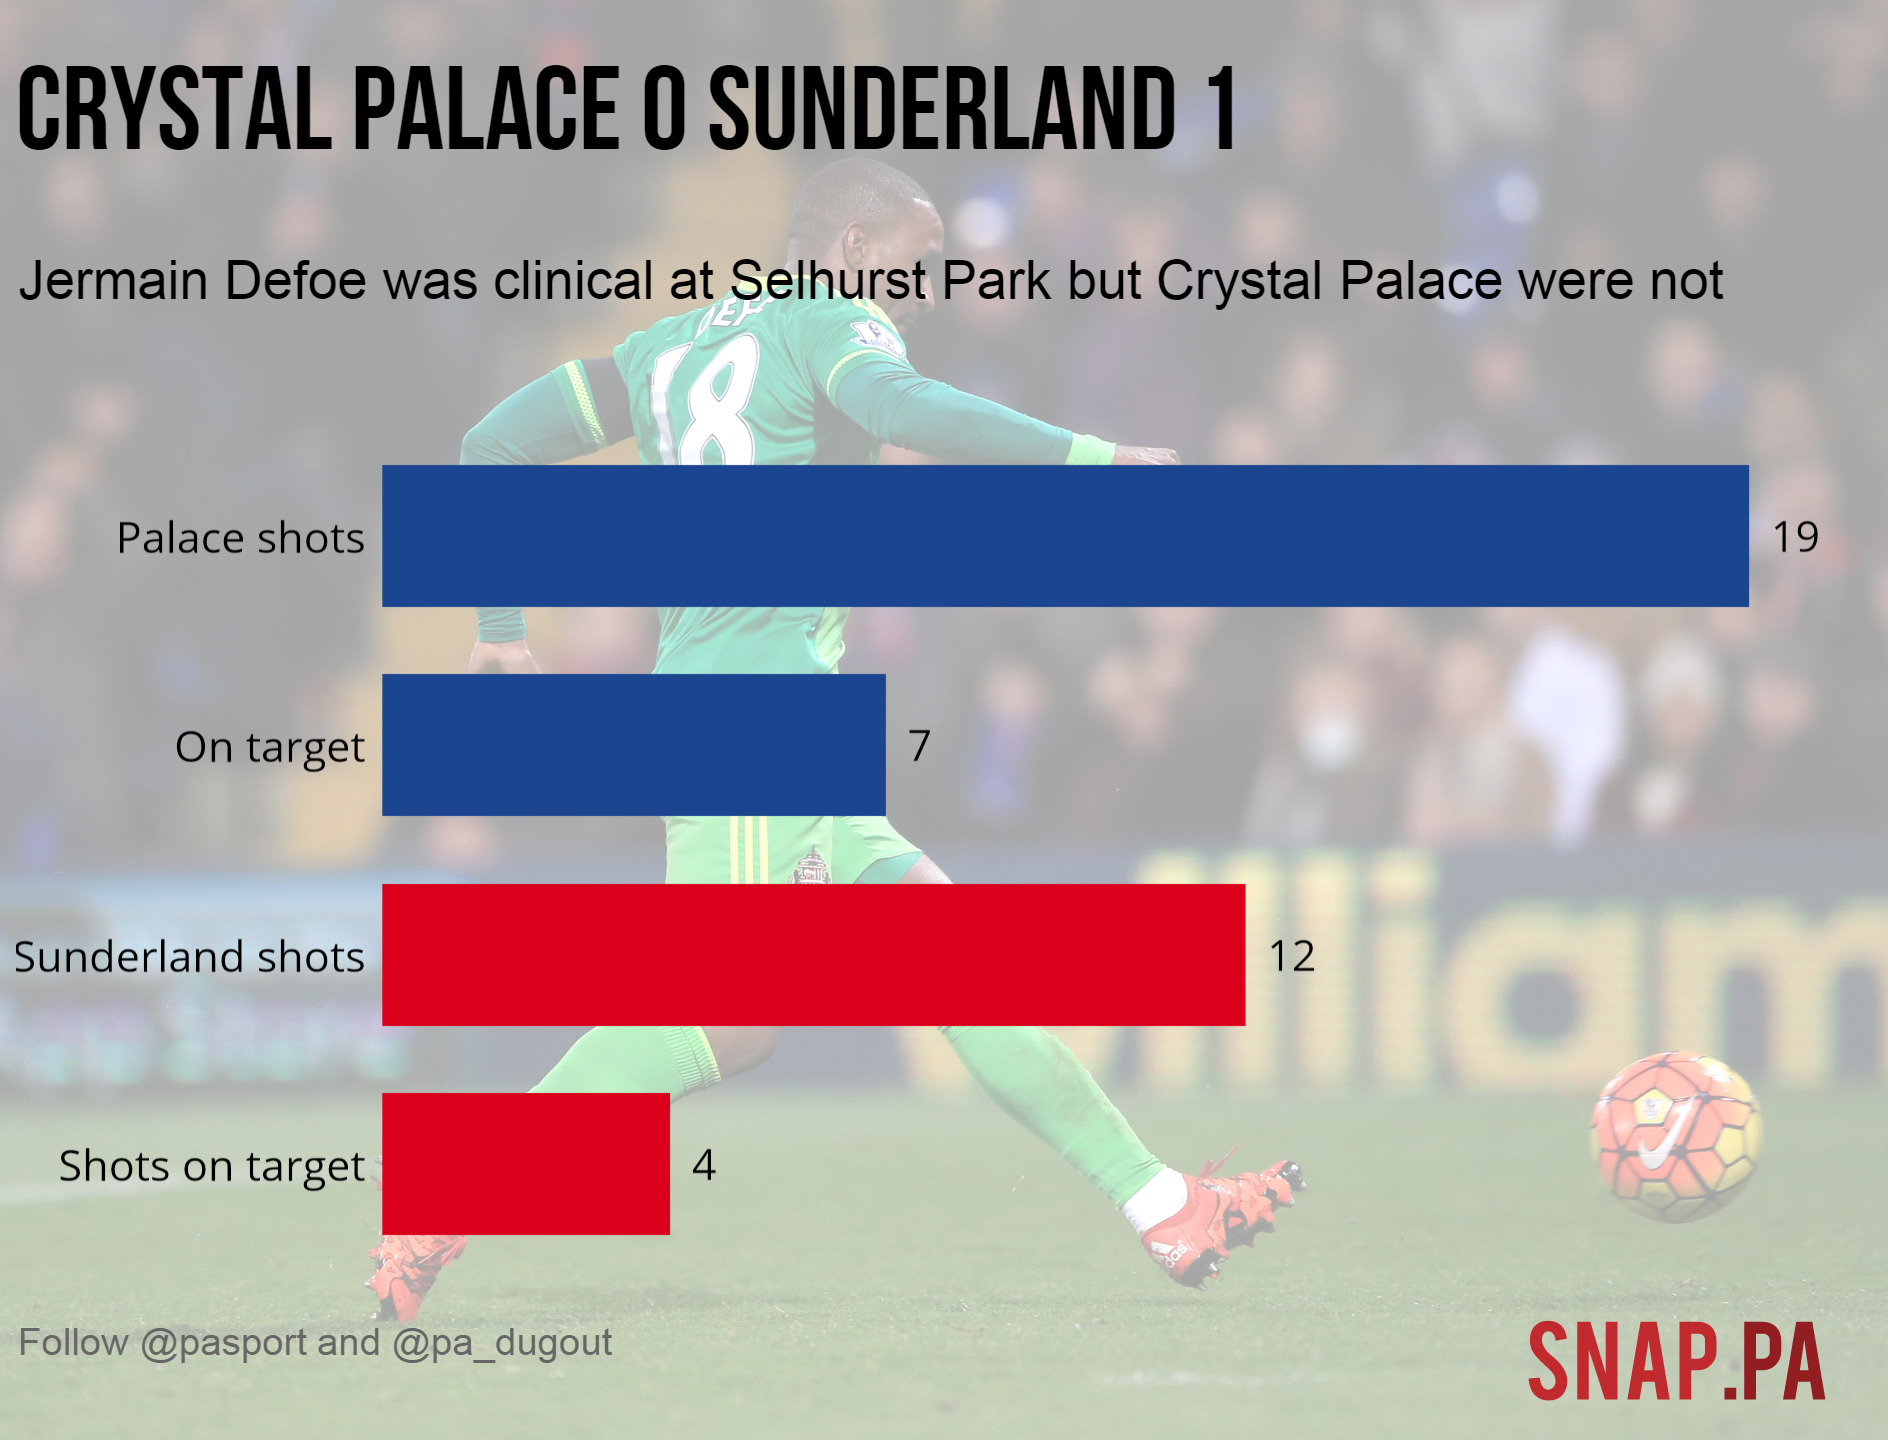 Crystal Palace v Sunderland match graphic and stats